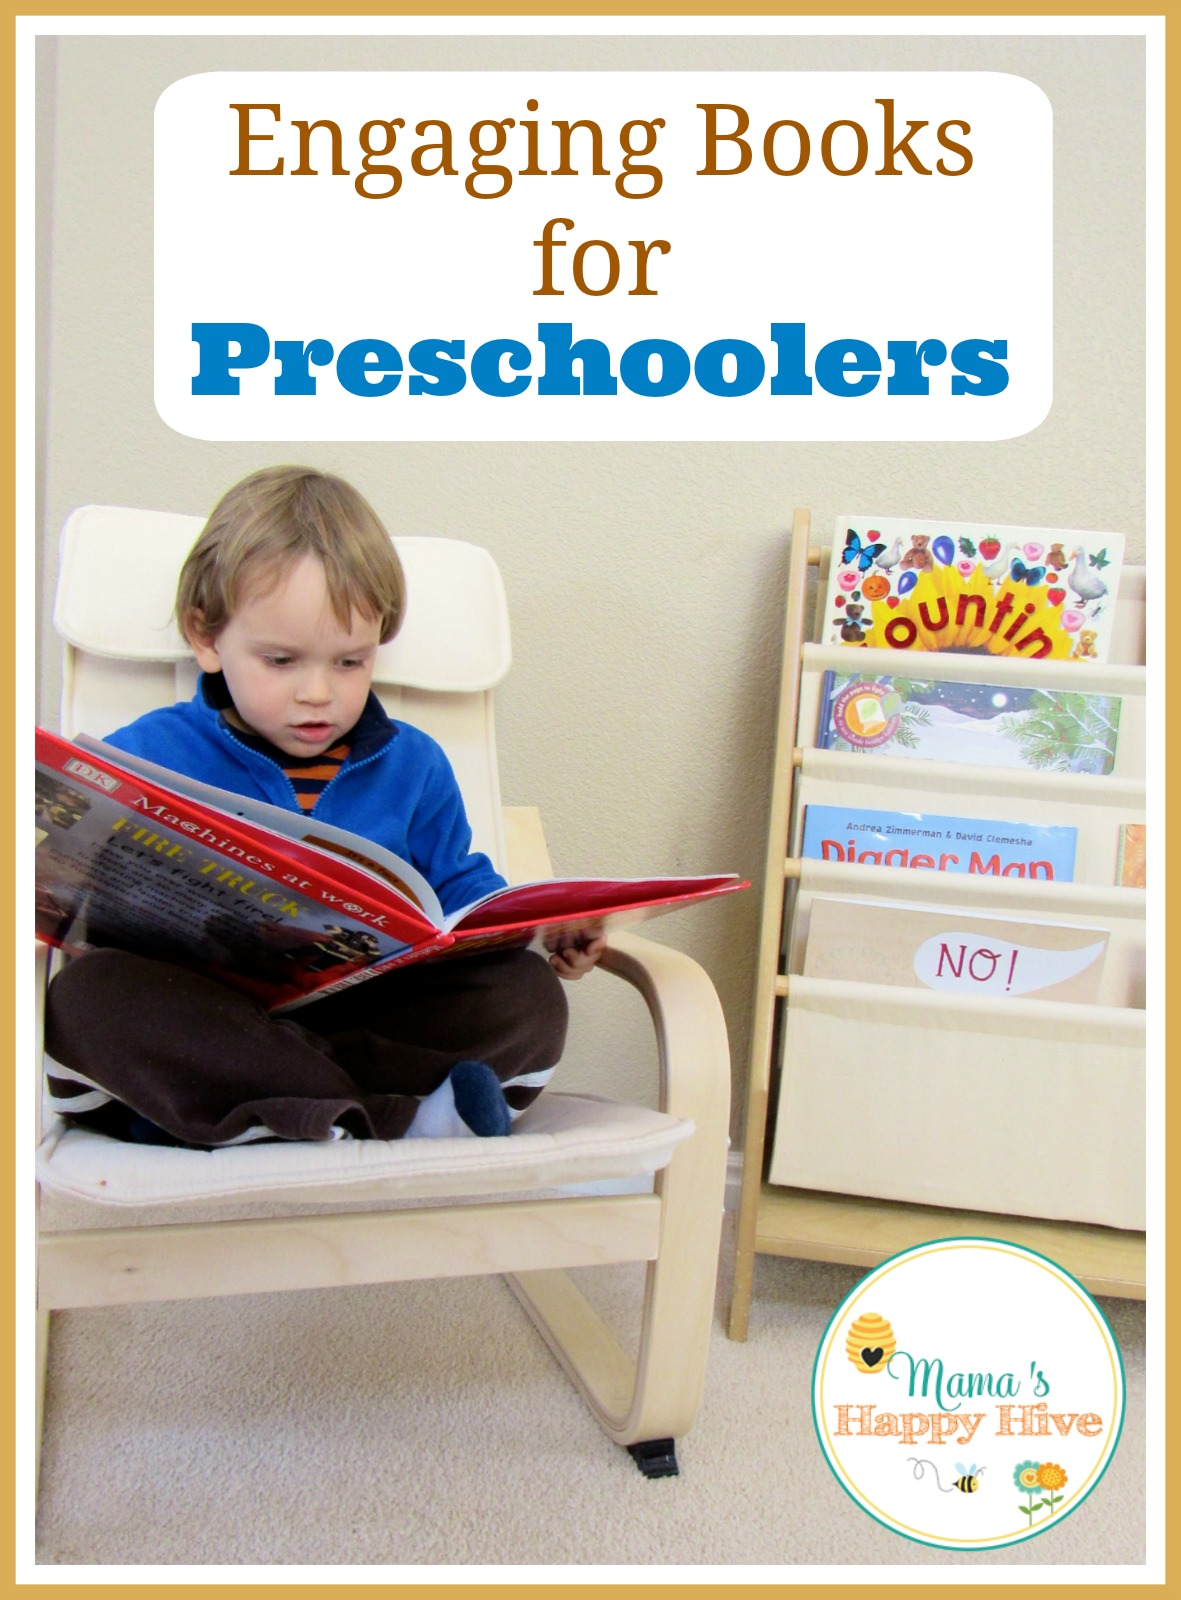 Step into our living room and discover what engaging books for preschoolers and Montessori language work we have on our book shelves. - www.mamashappyhive.com